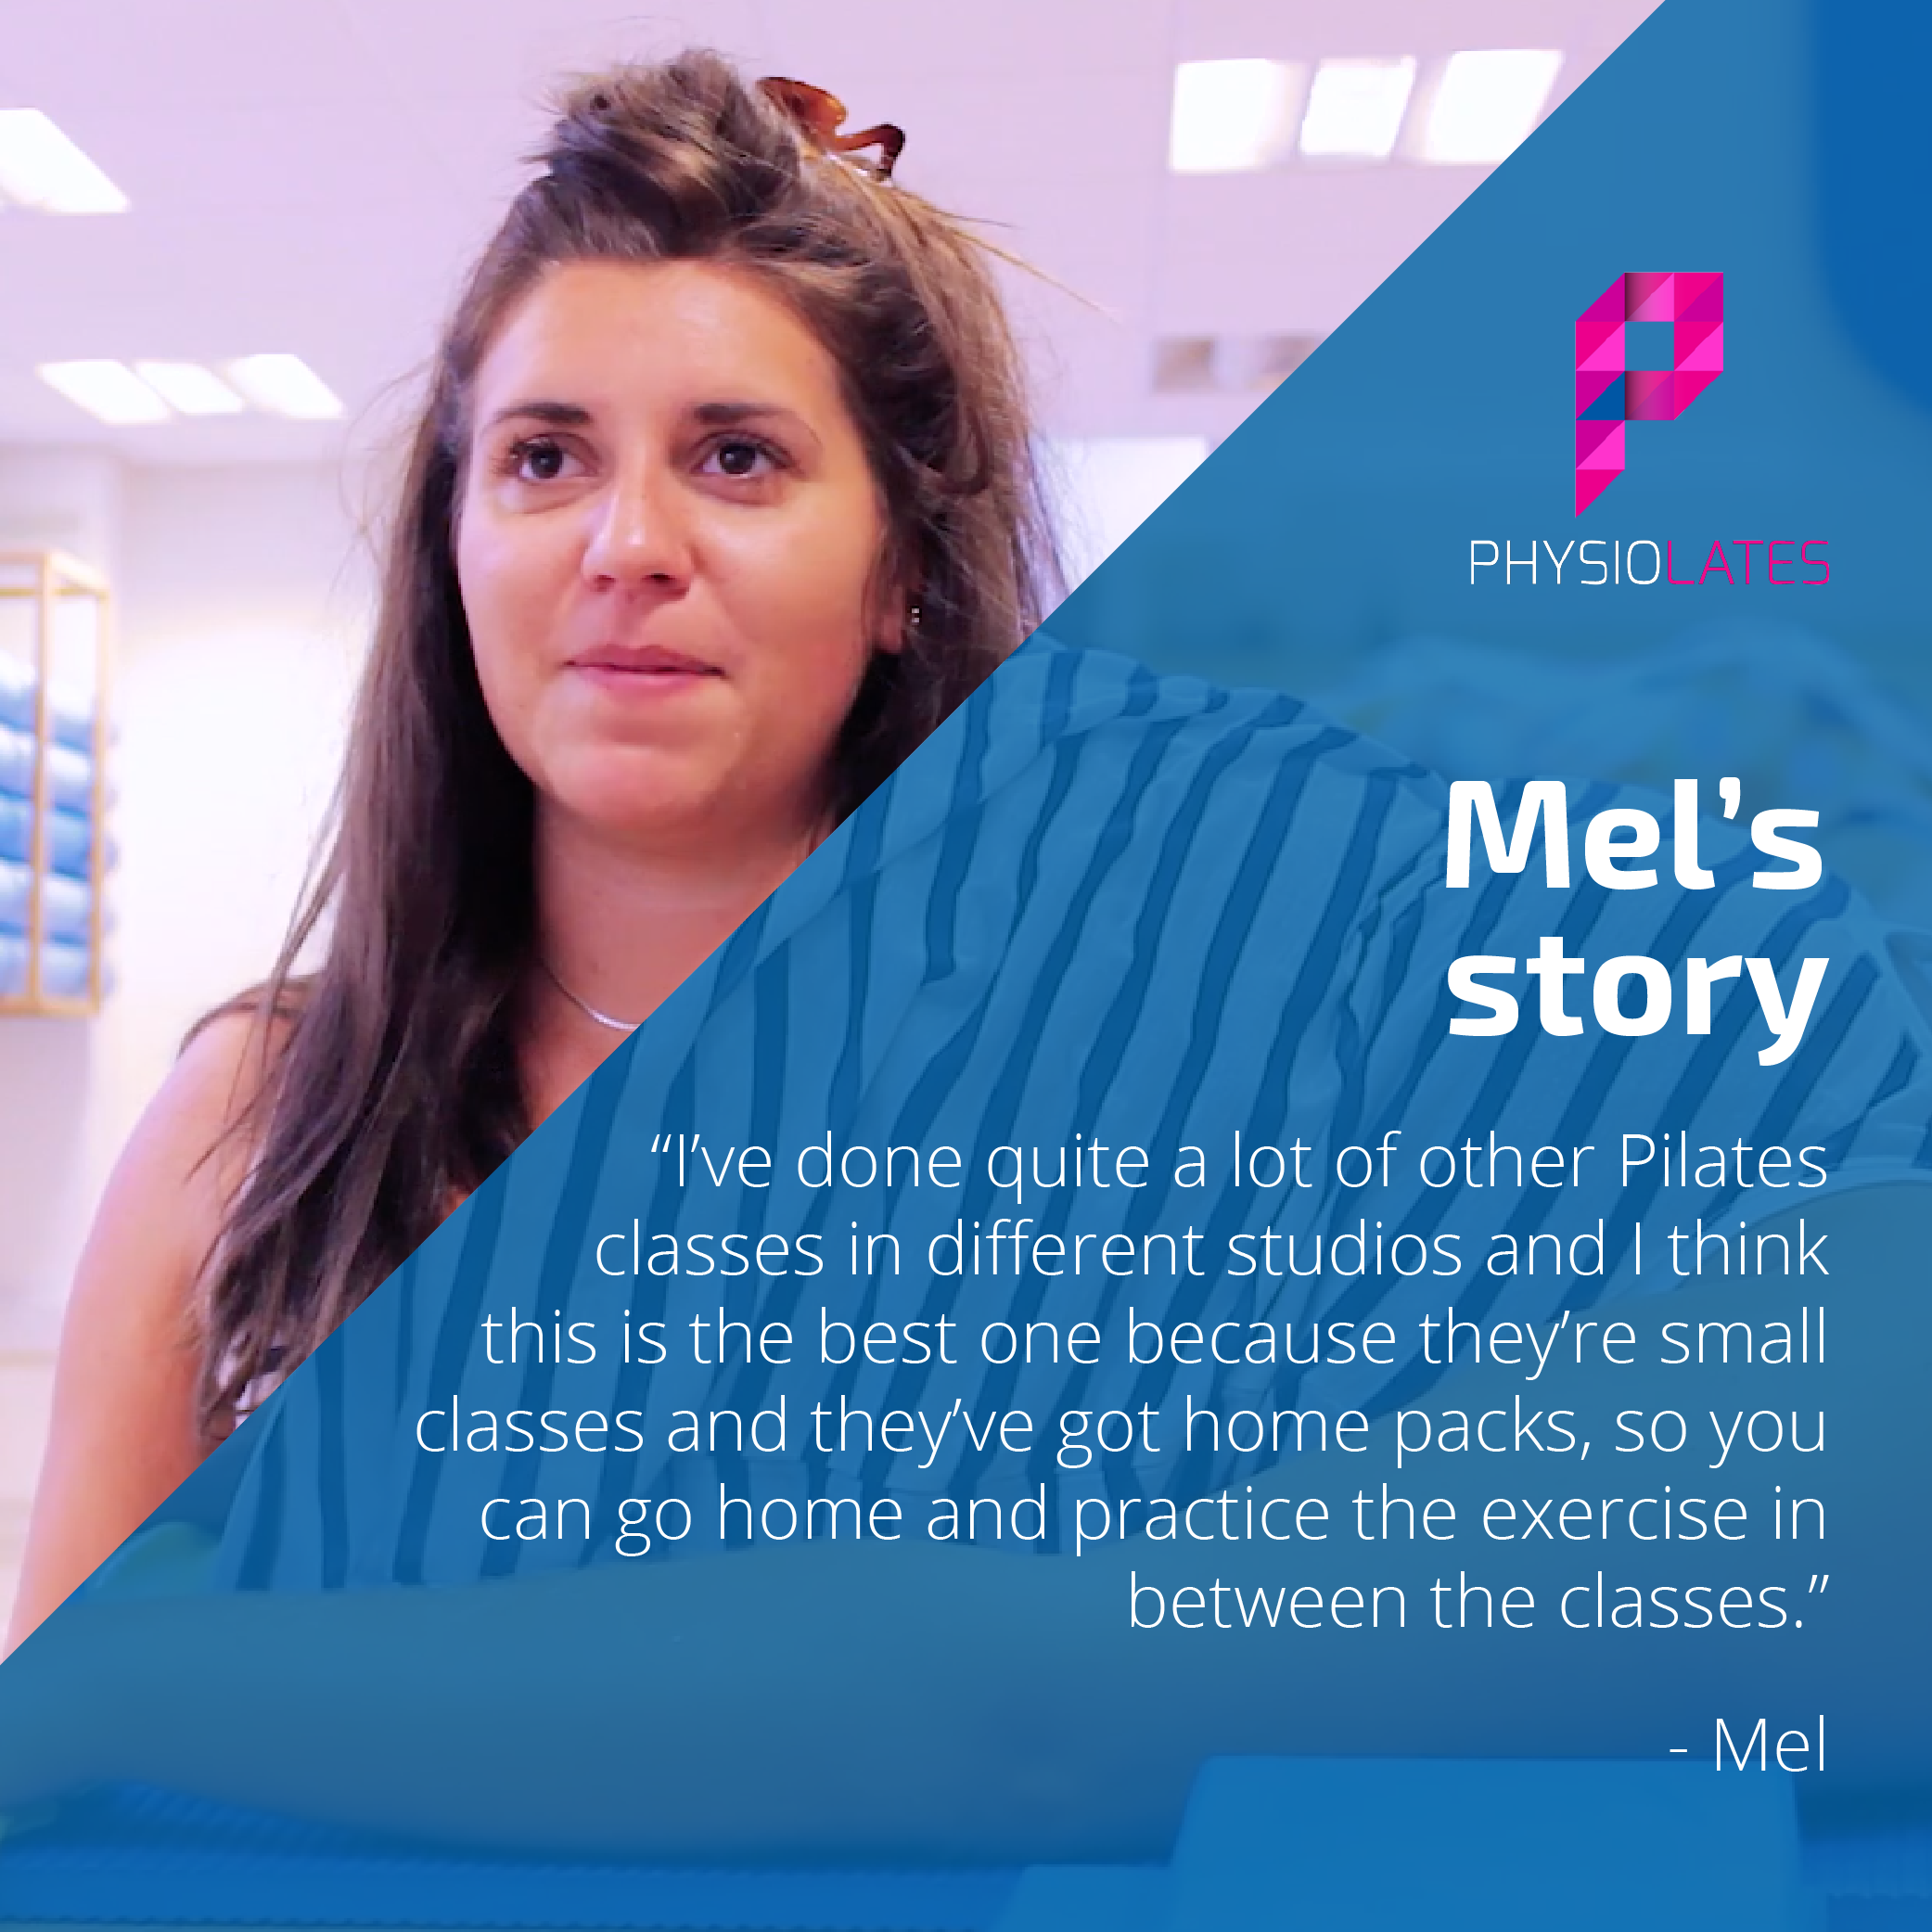 Mel's story, I've done quite a lot of other Pilates classes in different studios and i think this is the best one.